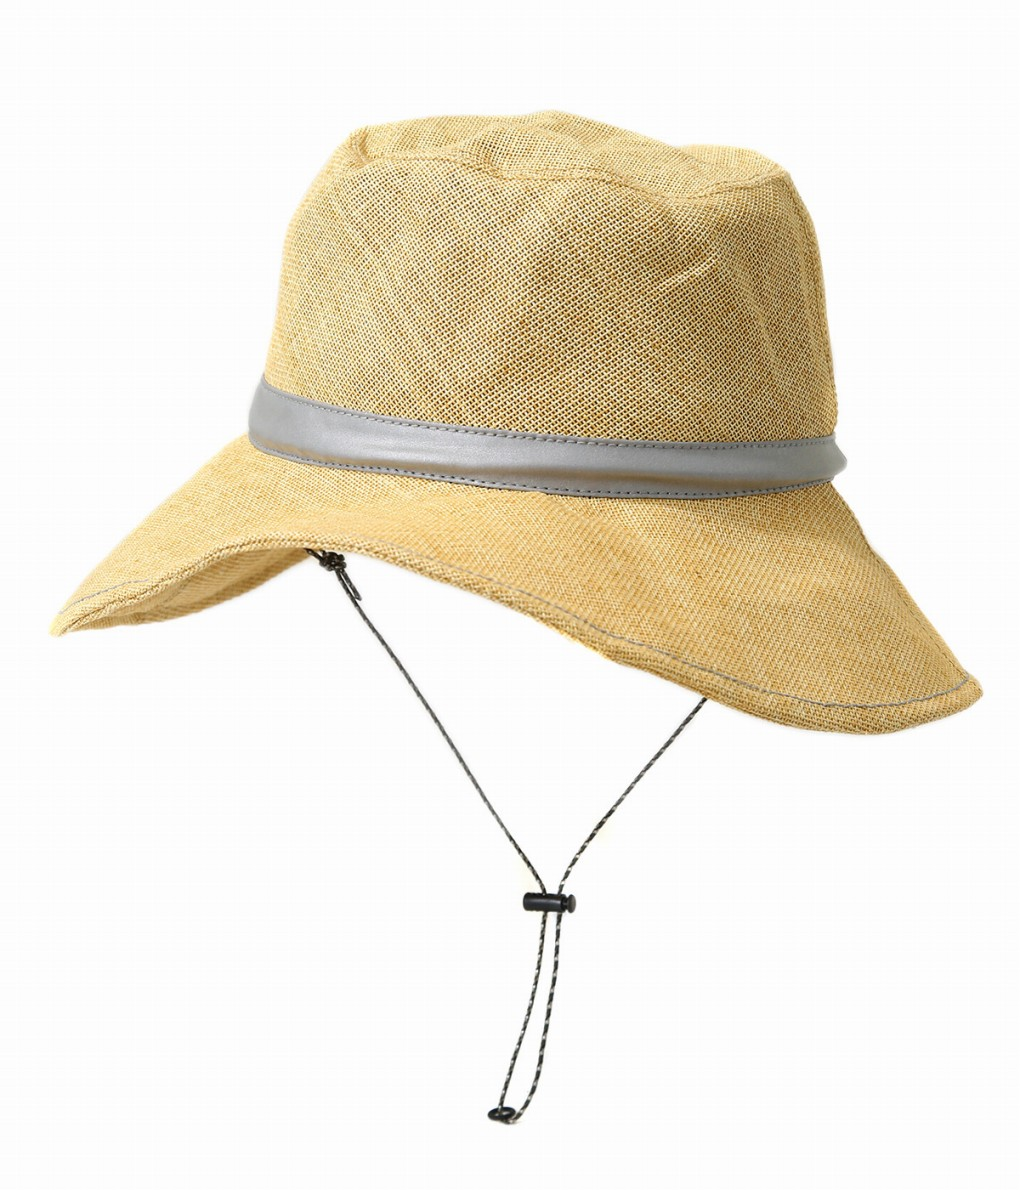 8c82a64b19d and wander   and Wonder  paper cloth hat  A paper hat men hat  AW91-AA631